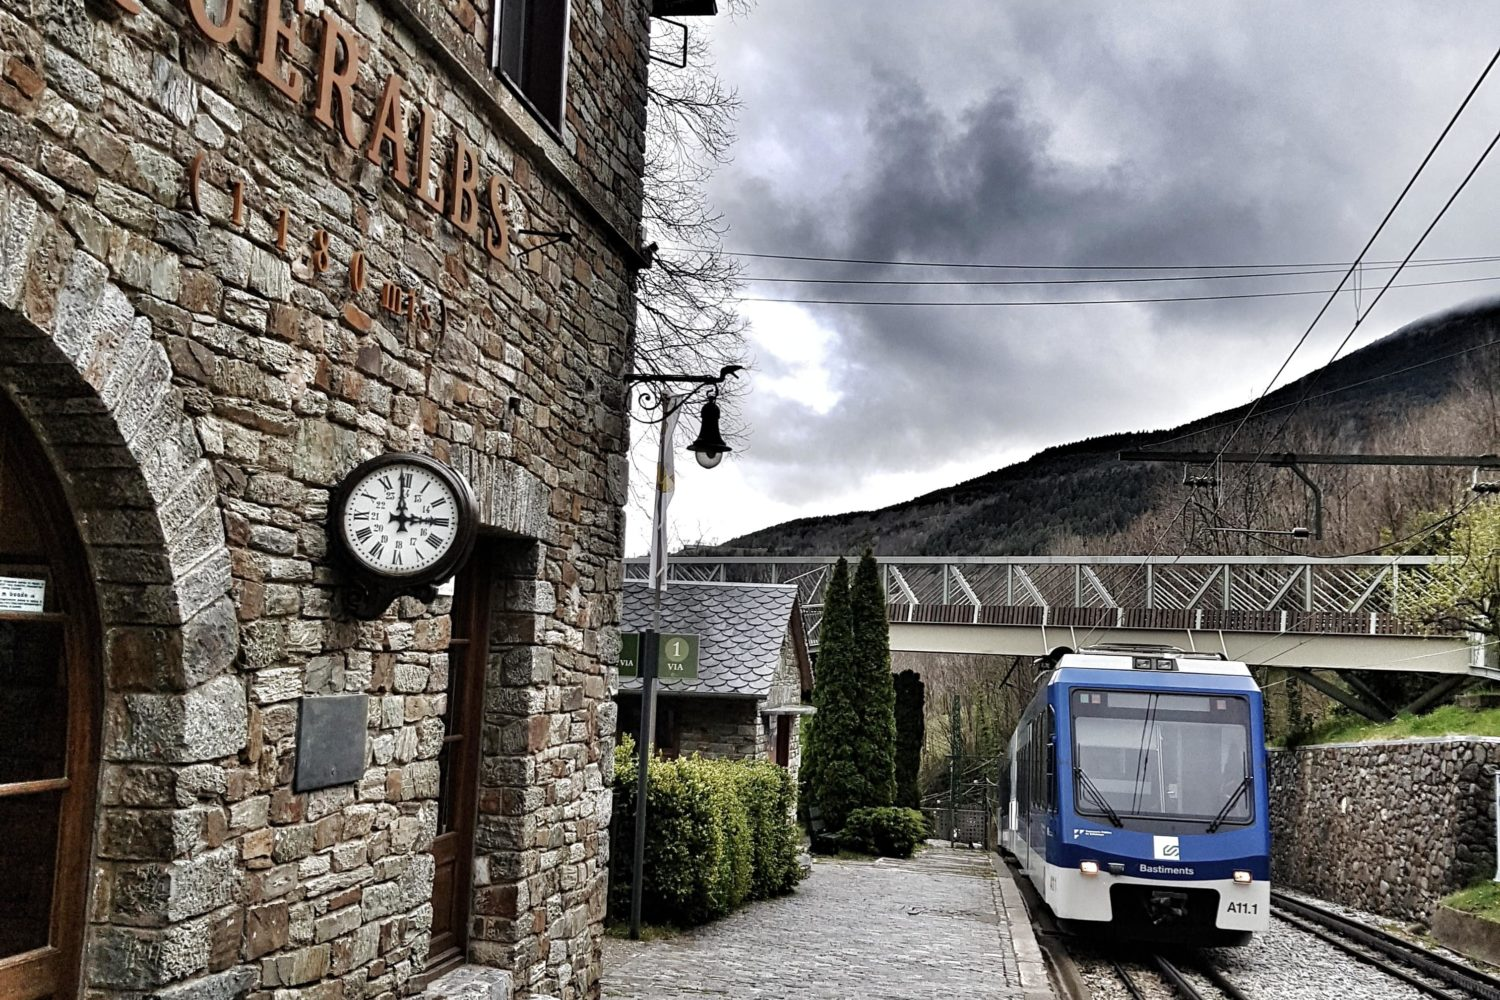 Hop on the cog wheel train in Queralbs and enter the fascinating Nuria Valley